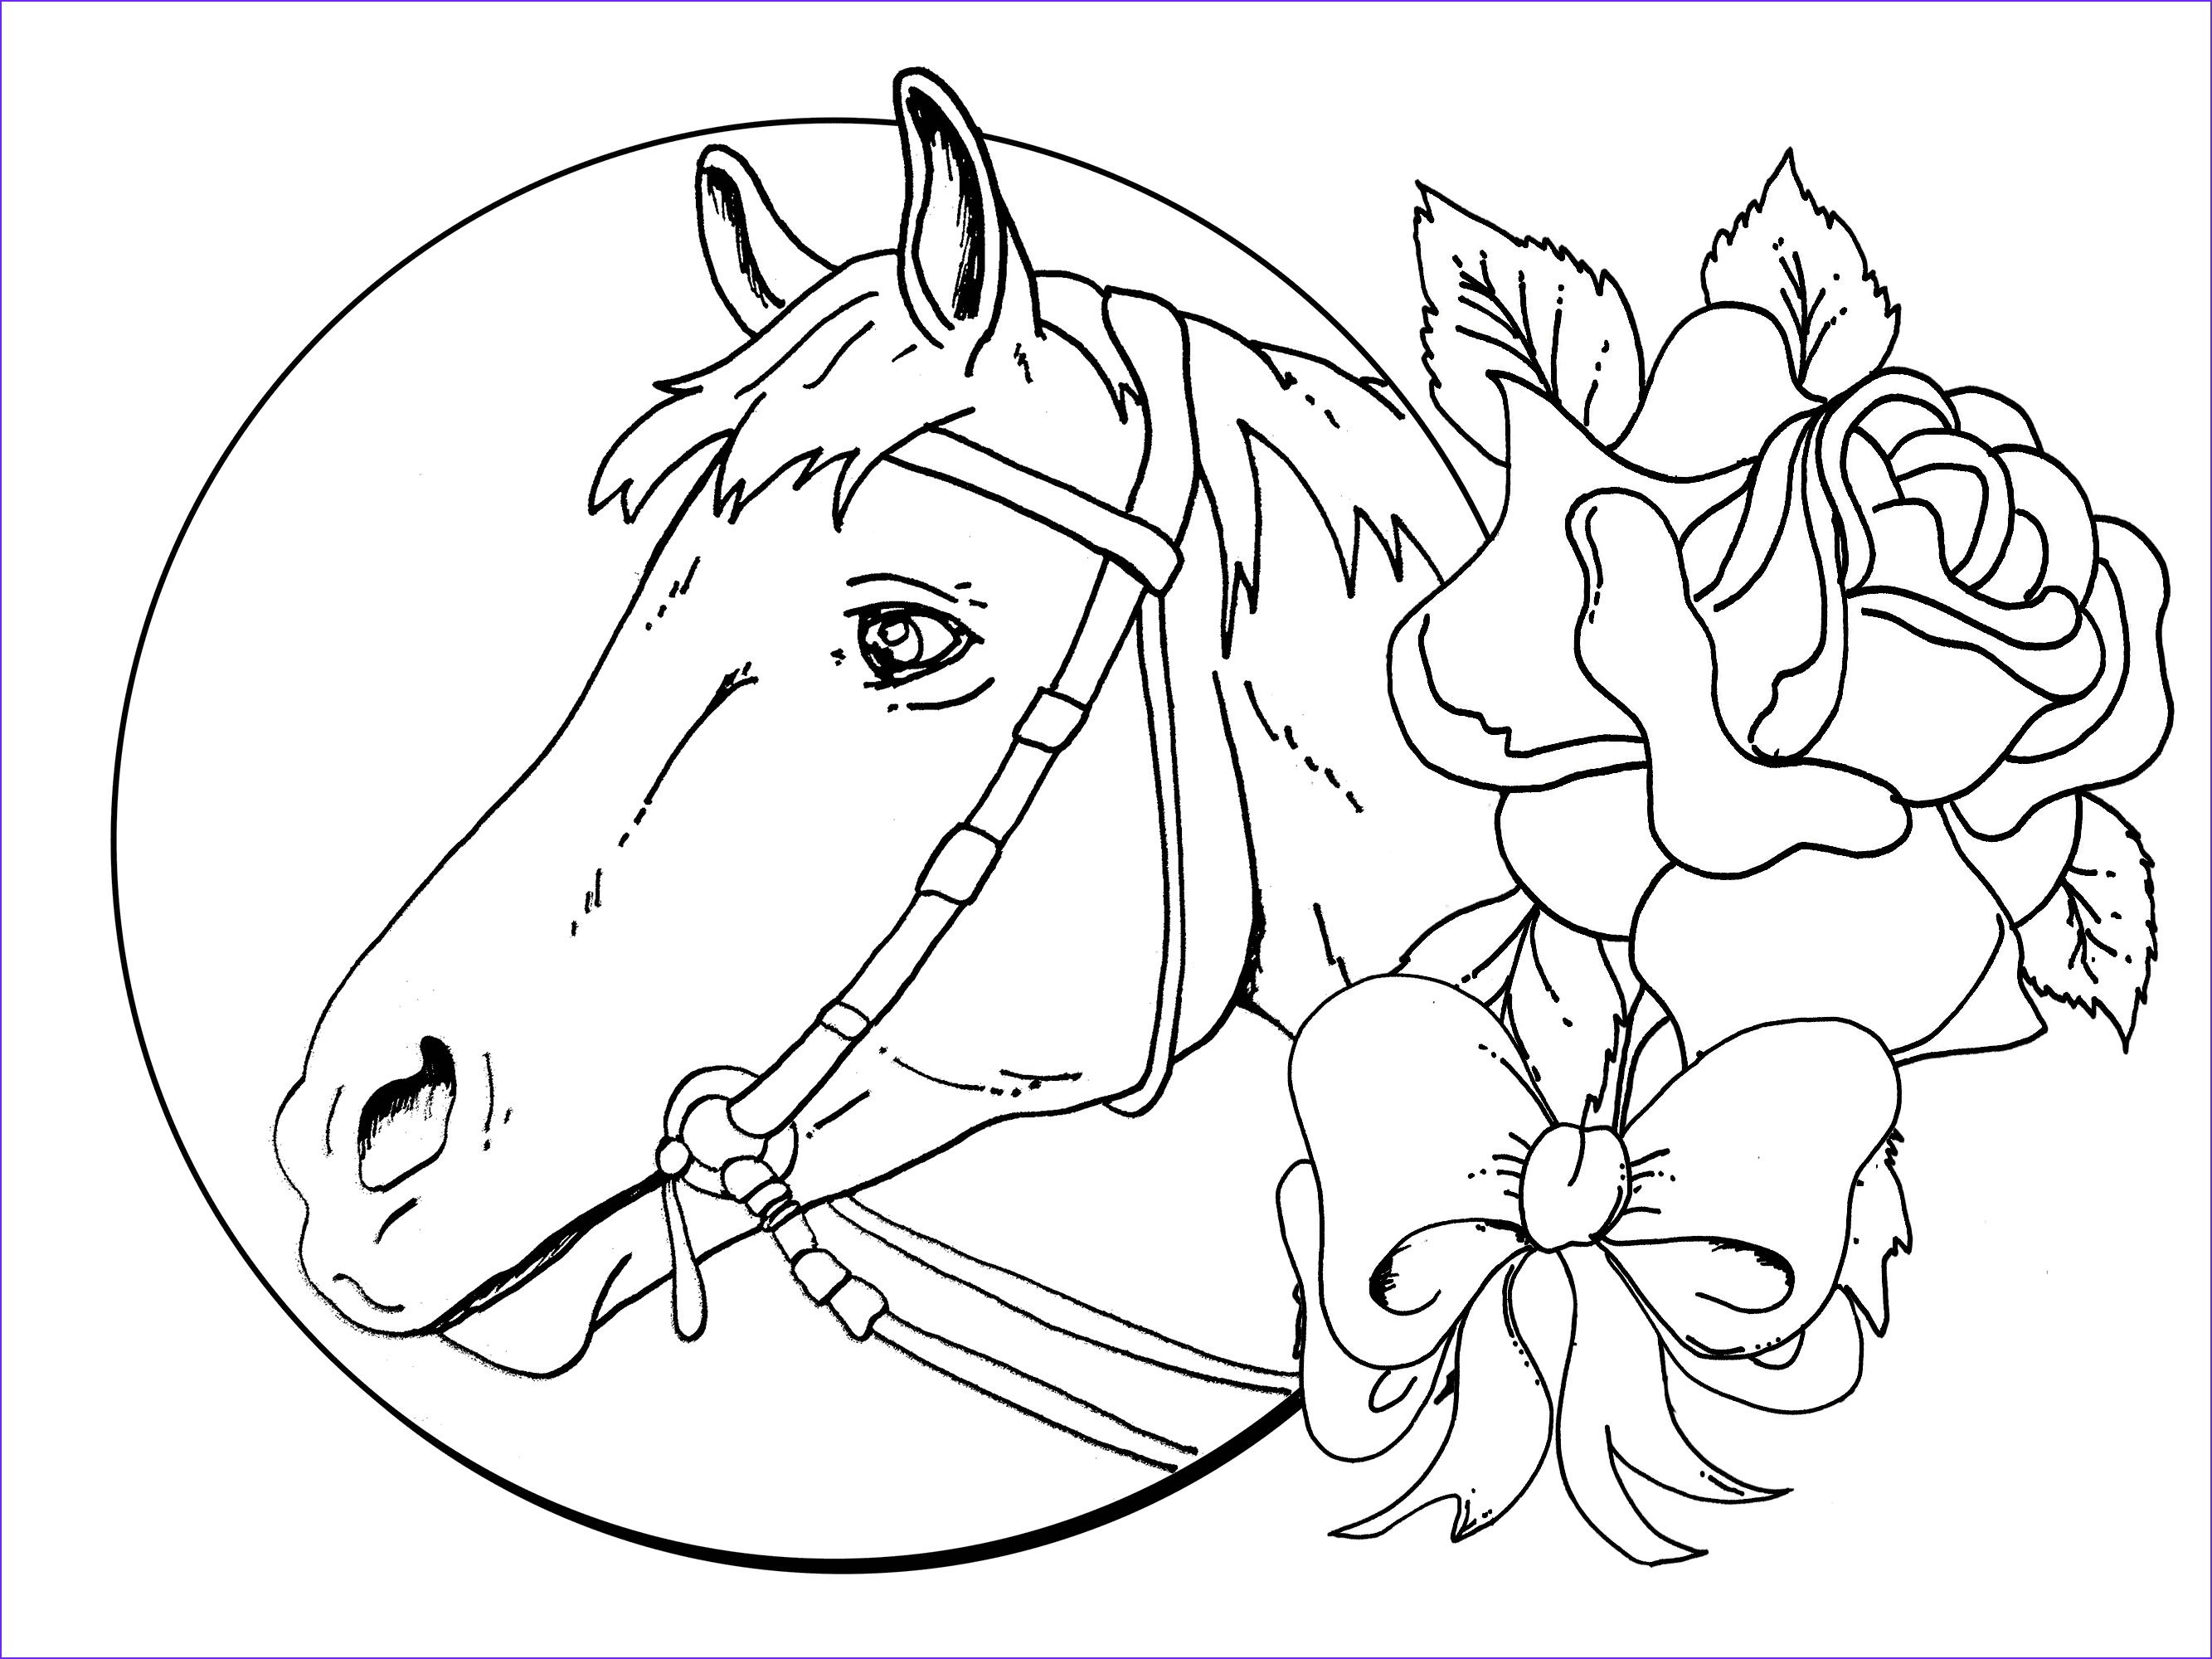 11 Cool Free Horse Coloring Page Collection